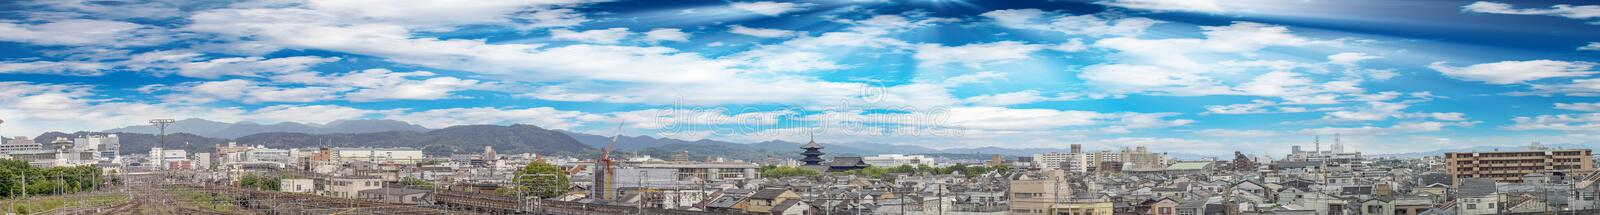 Giant panoramic view of Kyoto skyline, Japan stock images